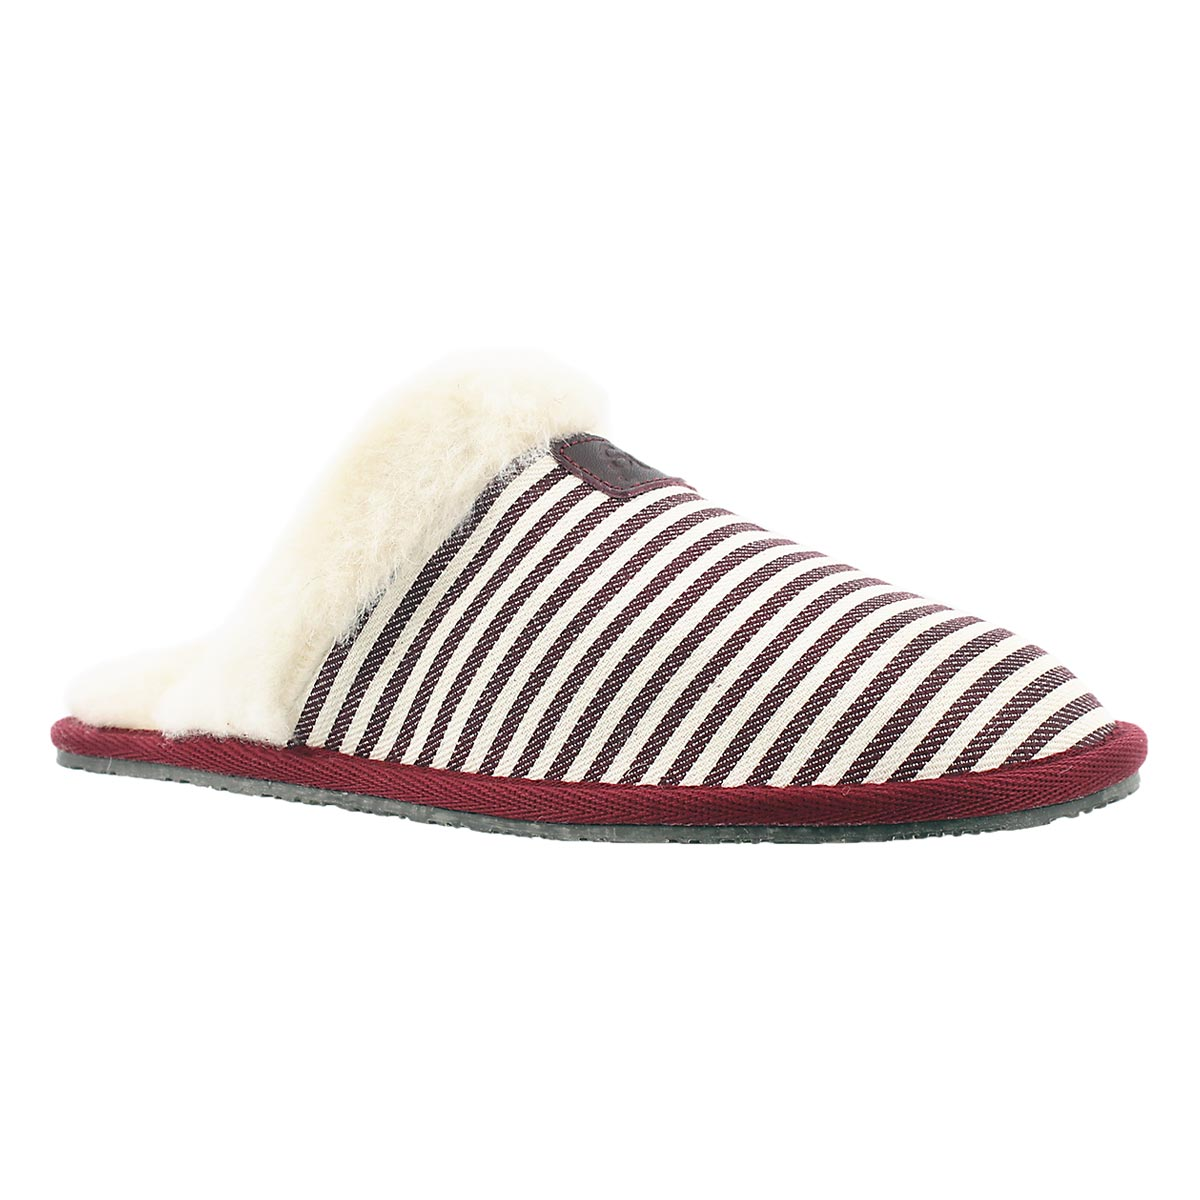 Women's STACEY burgundy stripe memory foam slipper